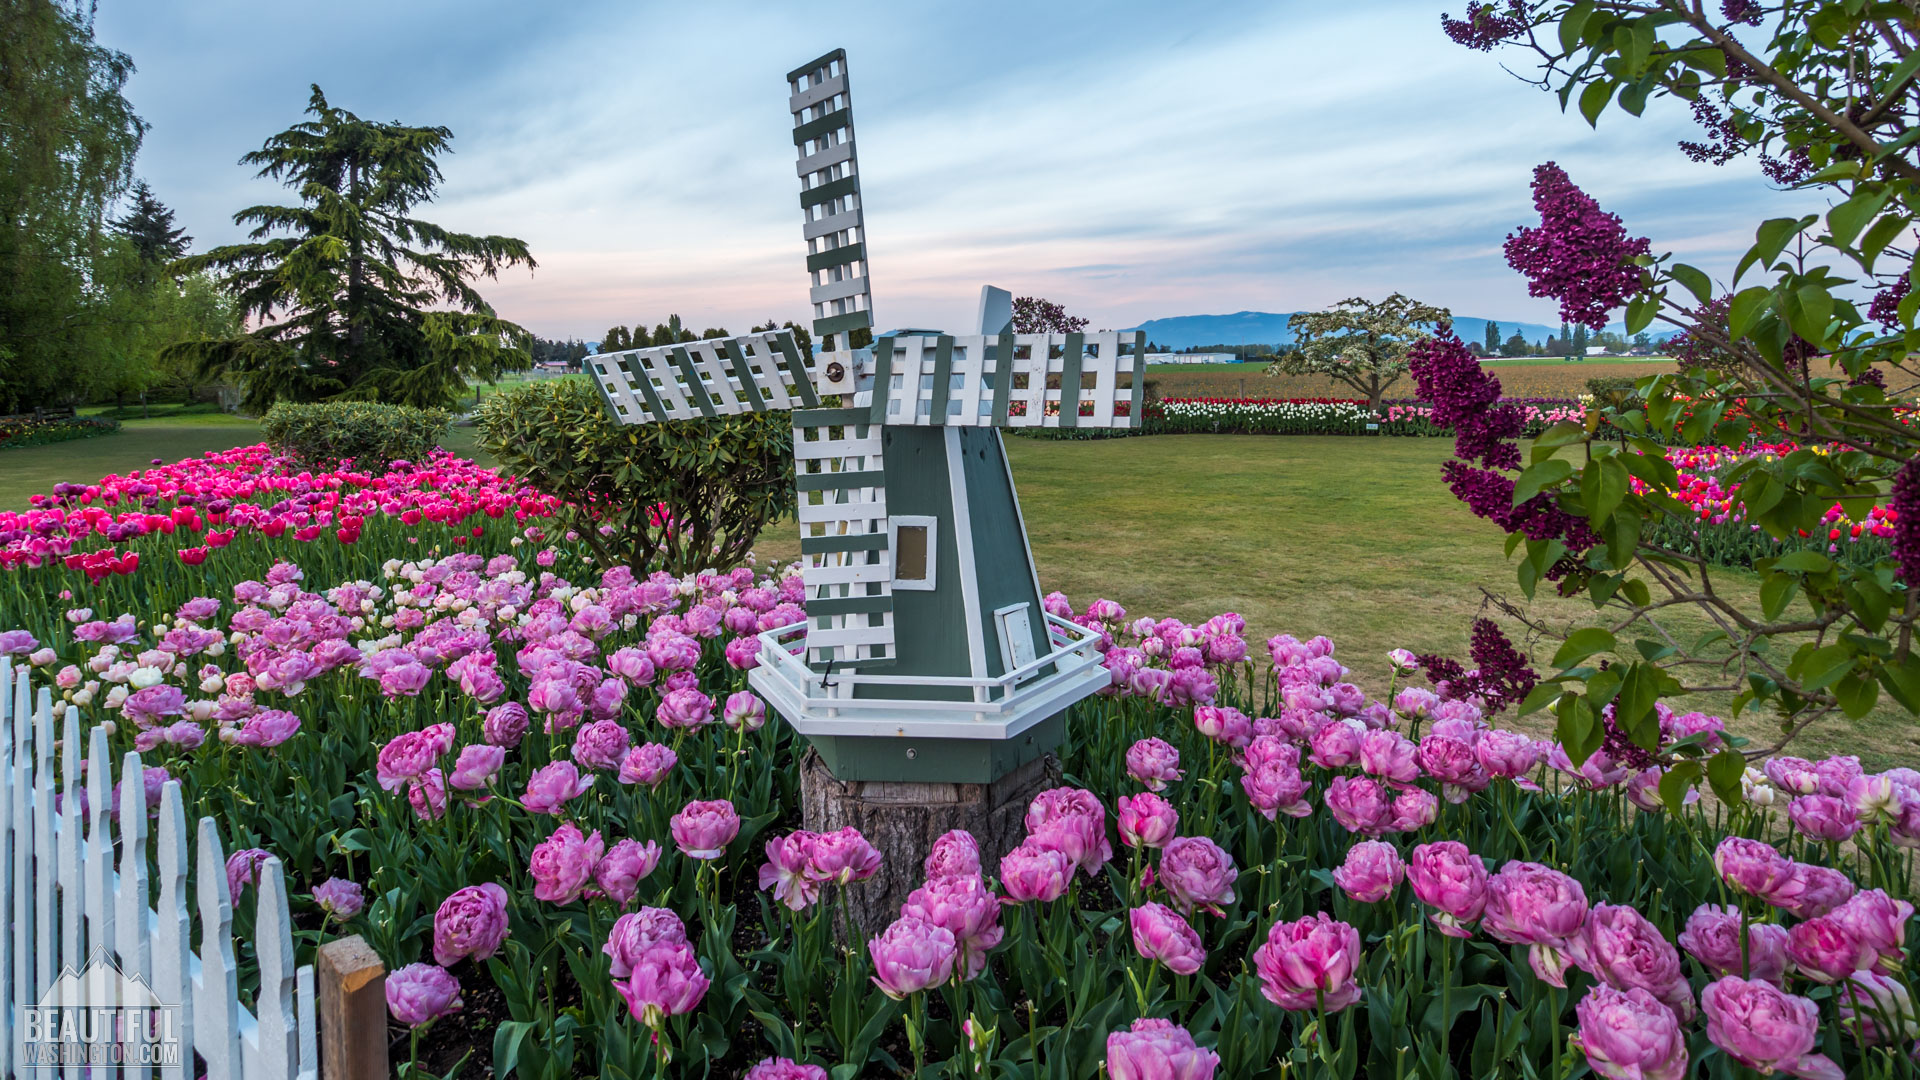 Photo from Skagit Valley Tulip Festival 2016